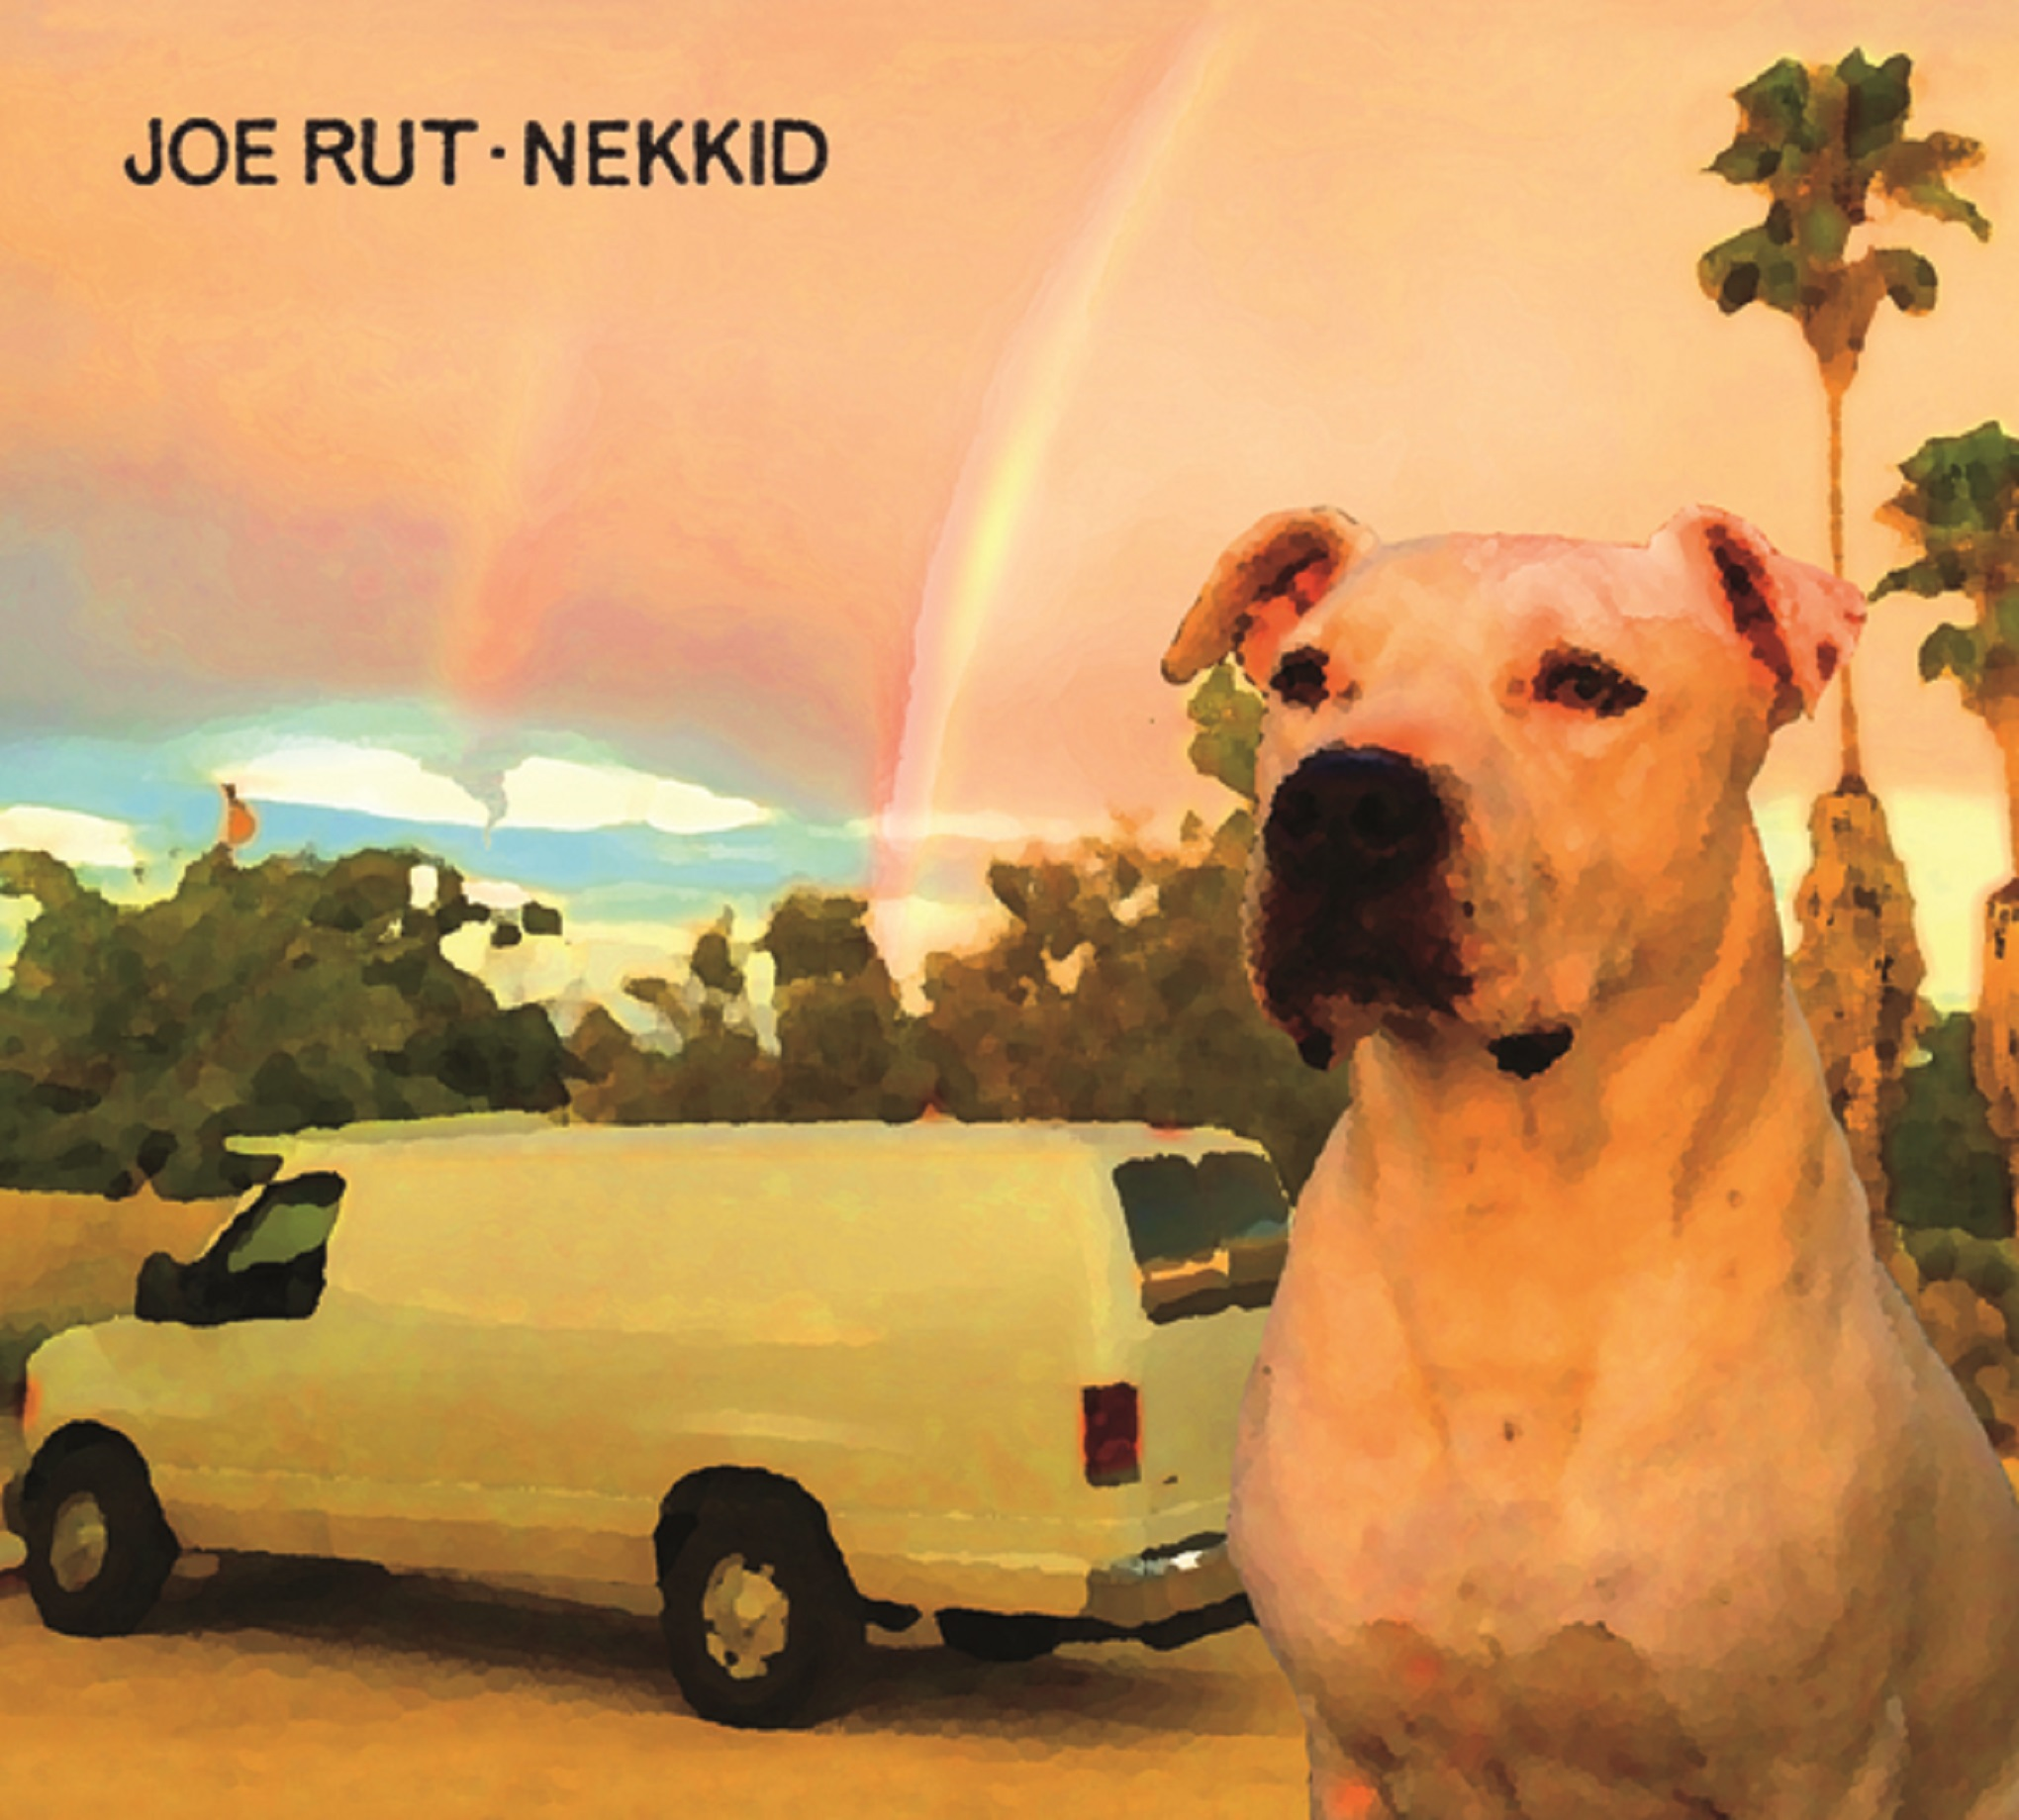 Joe Rut's 7th album, 'Nekkid' is Out Now